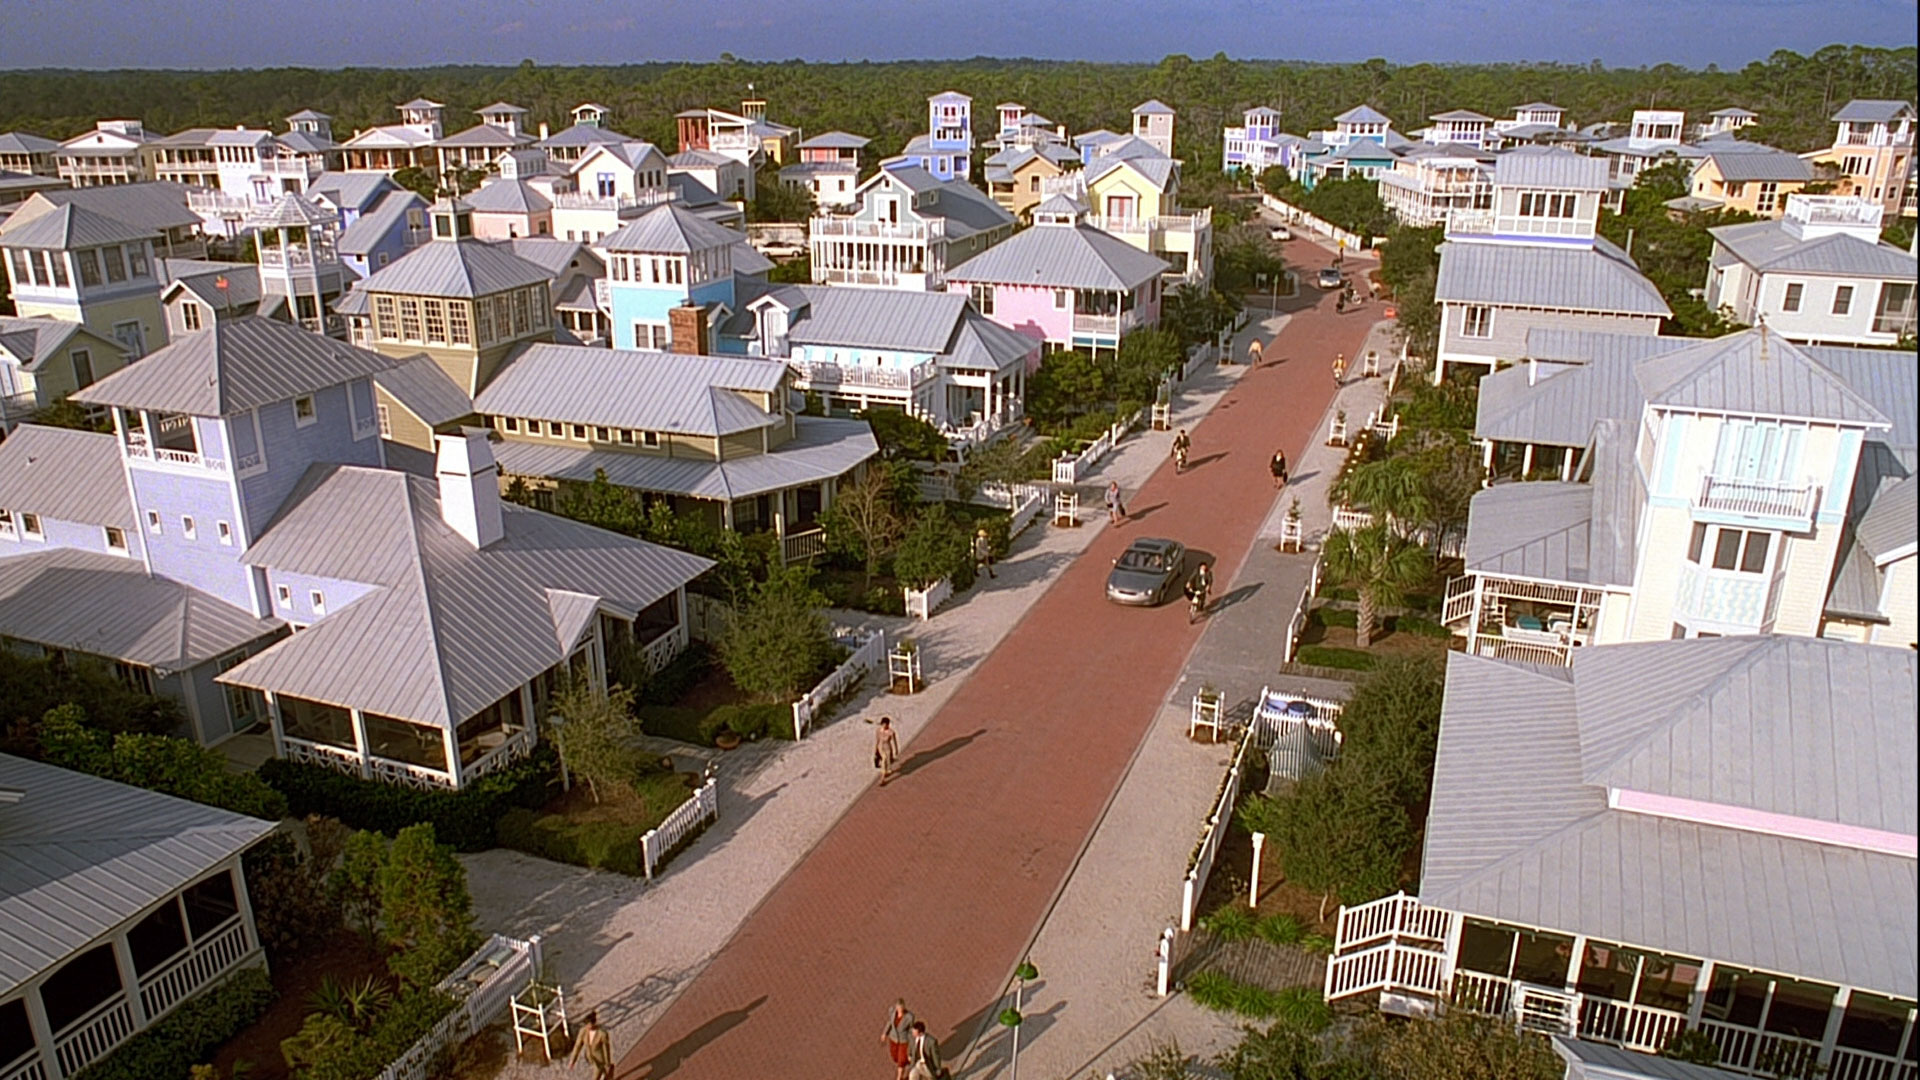 New Urbanist movement in neighborhood planning, Seaside, Florida.